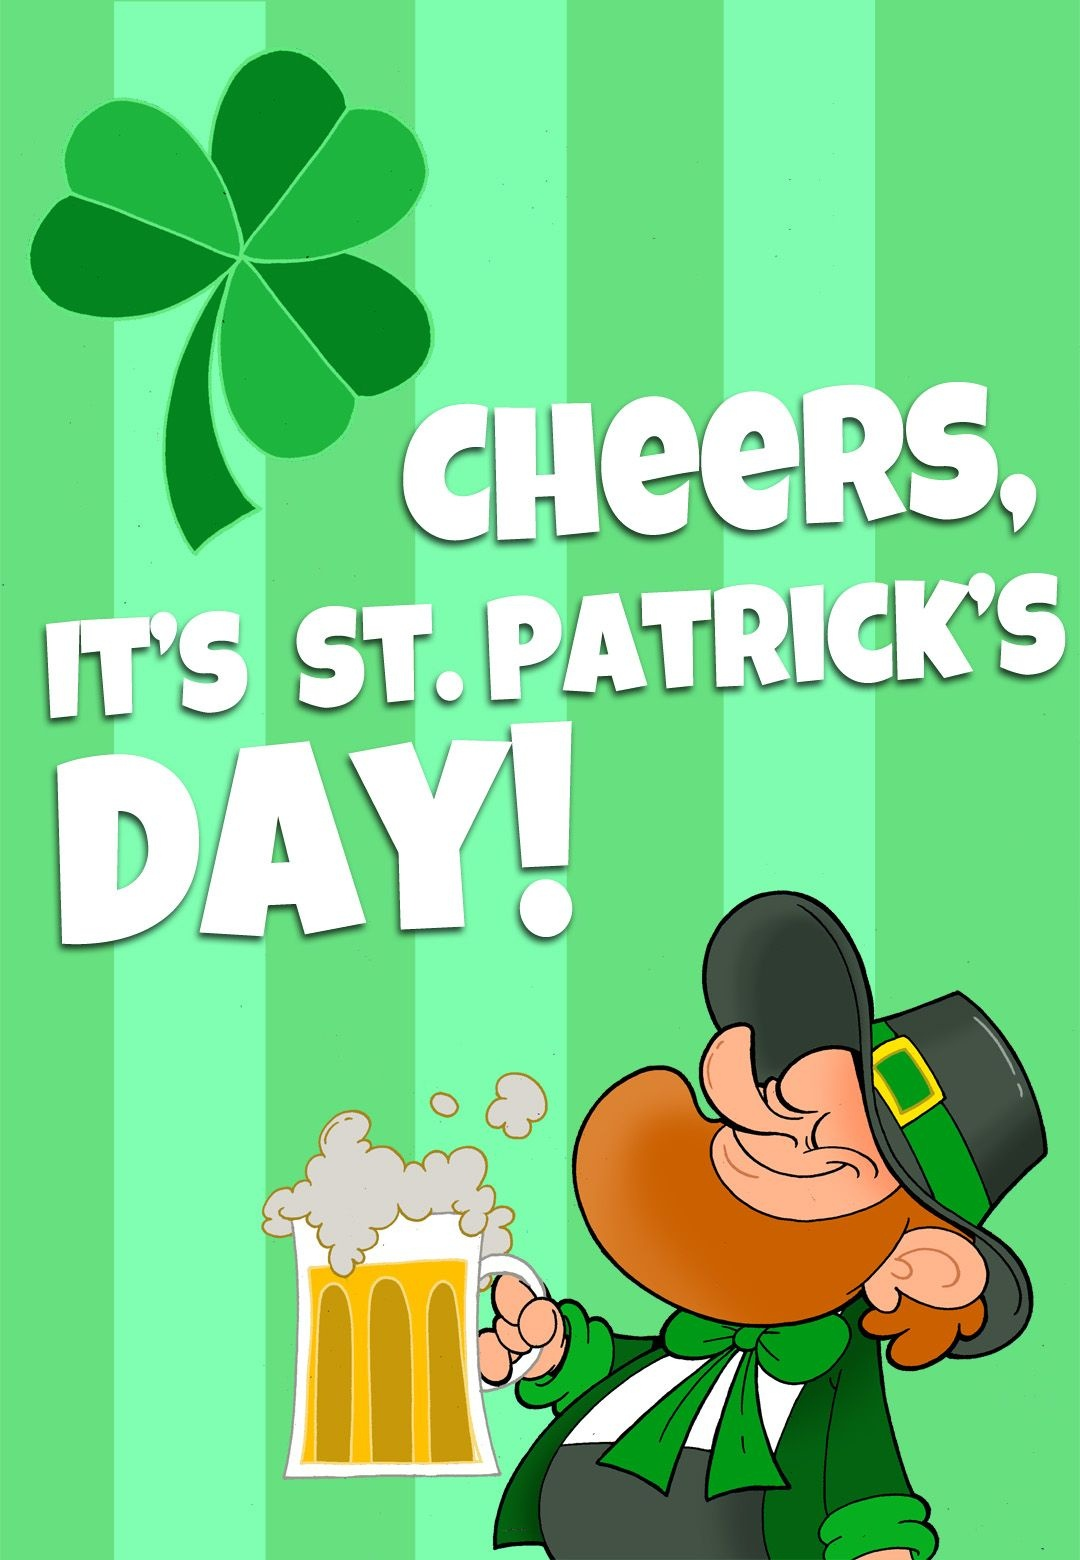 Free Printable 'its St Patricks Day' Greeting Card | Printable St - Free Printable St Patrick's Day Card